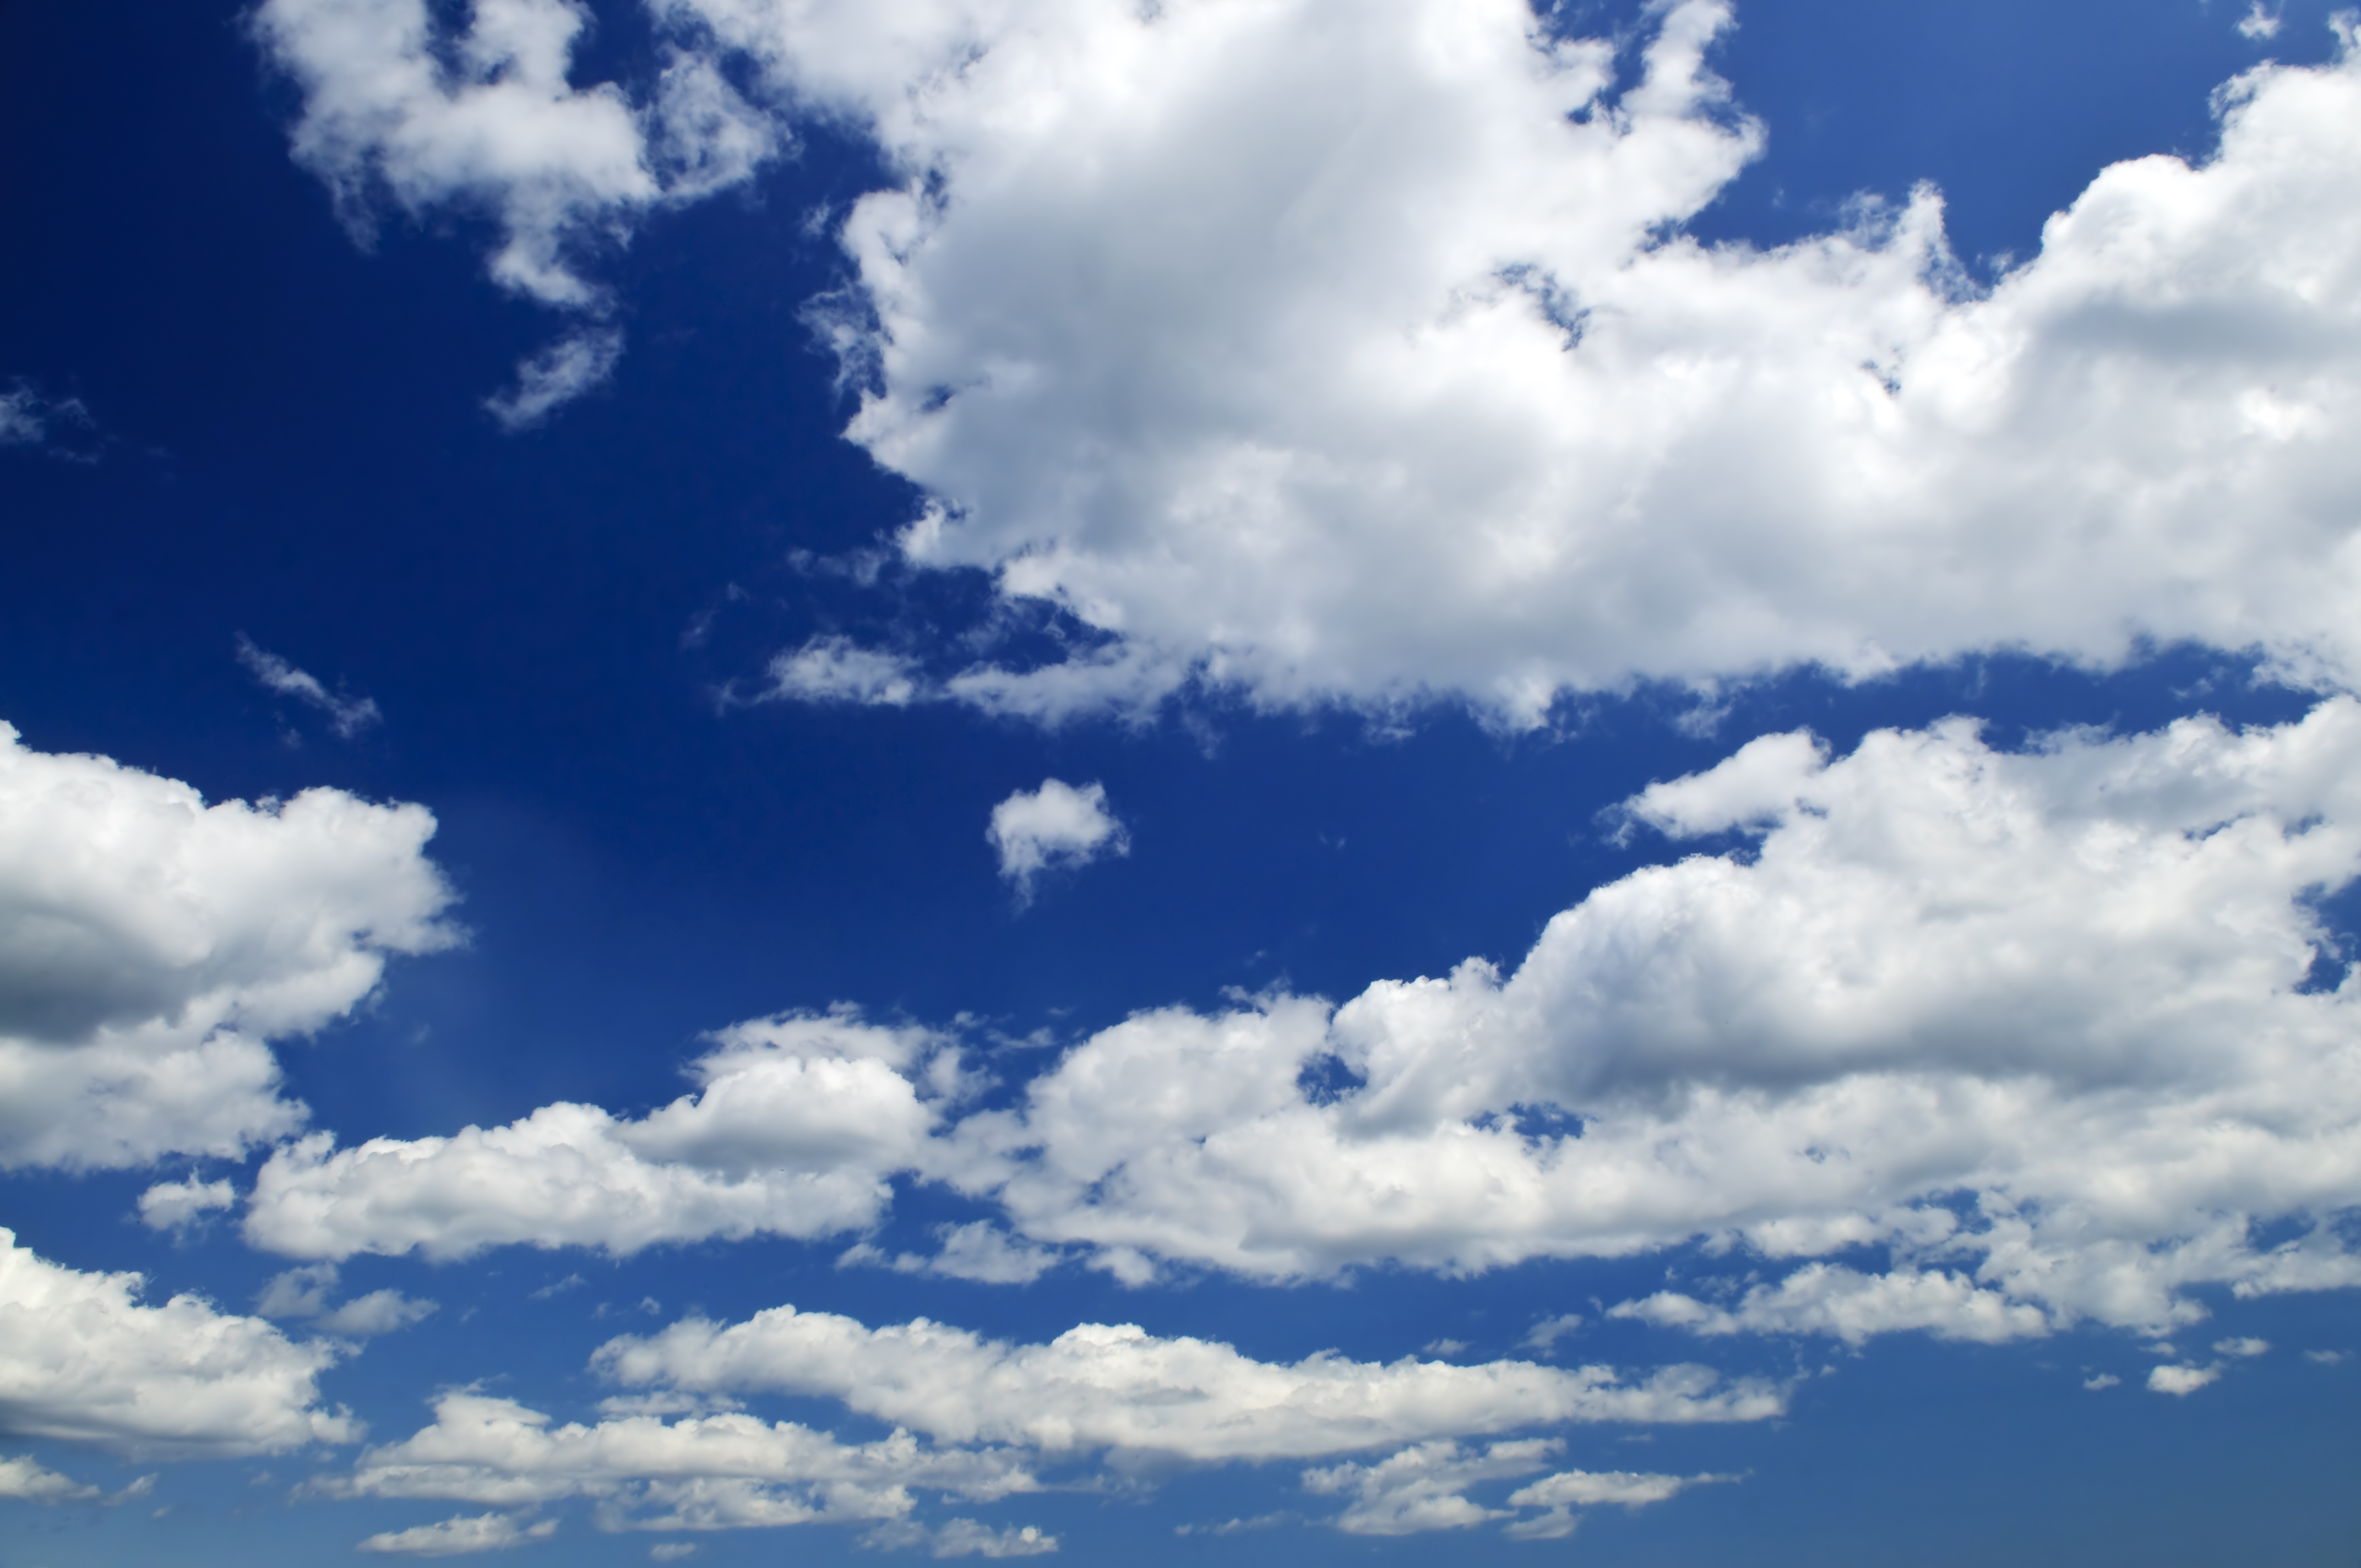 Top Clouds And Blue Sky Wallpapers 4288x2848